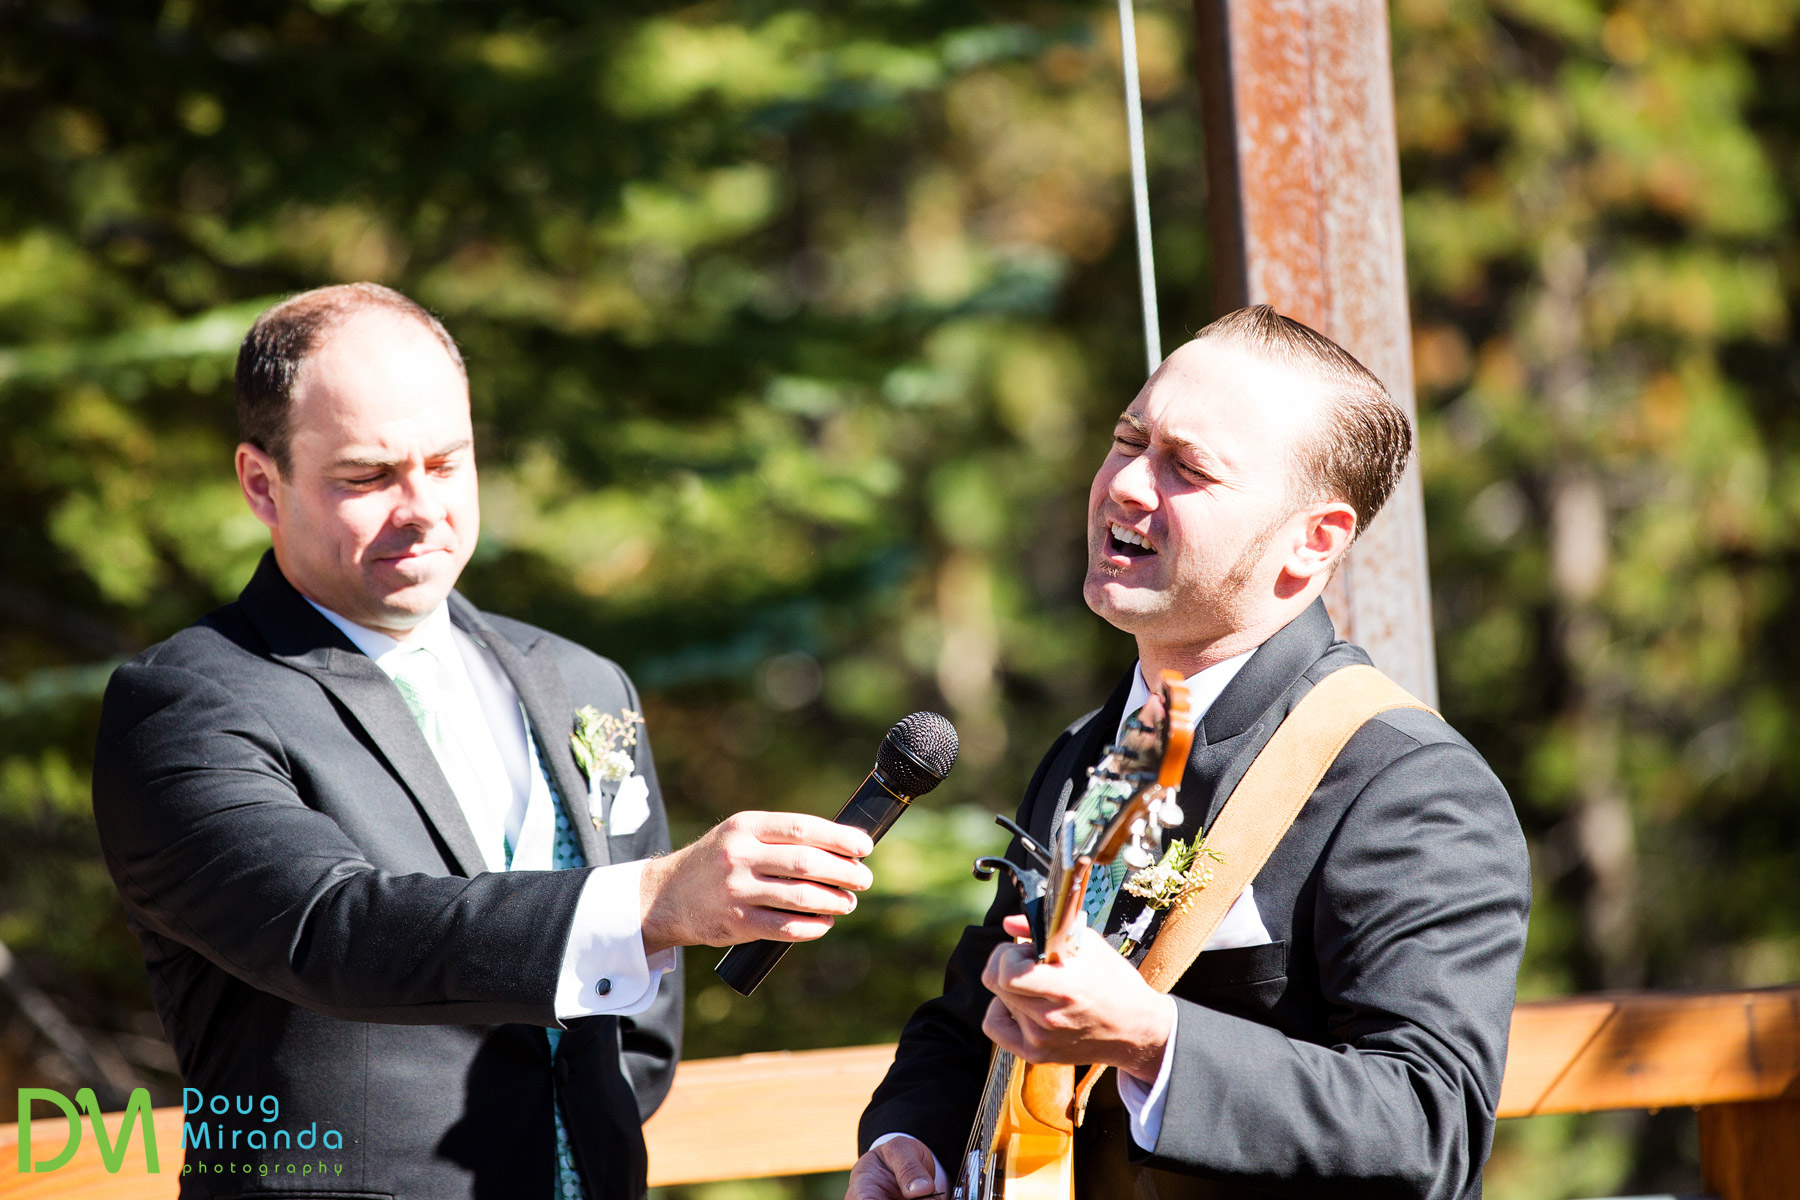 One of Nick's groomsmen played a song from them during the ceremony.